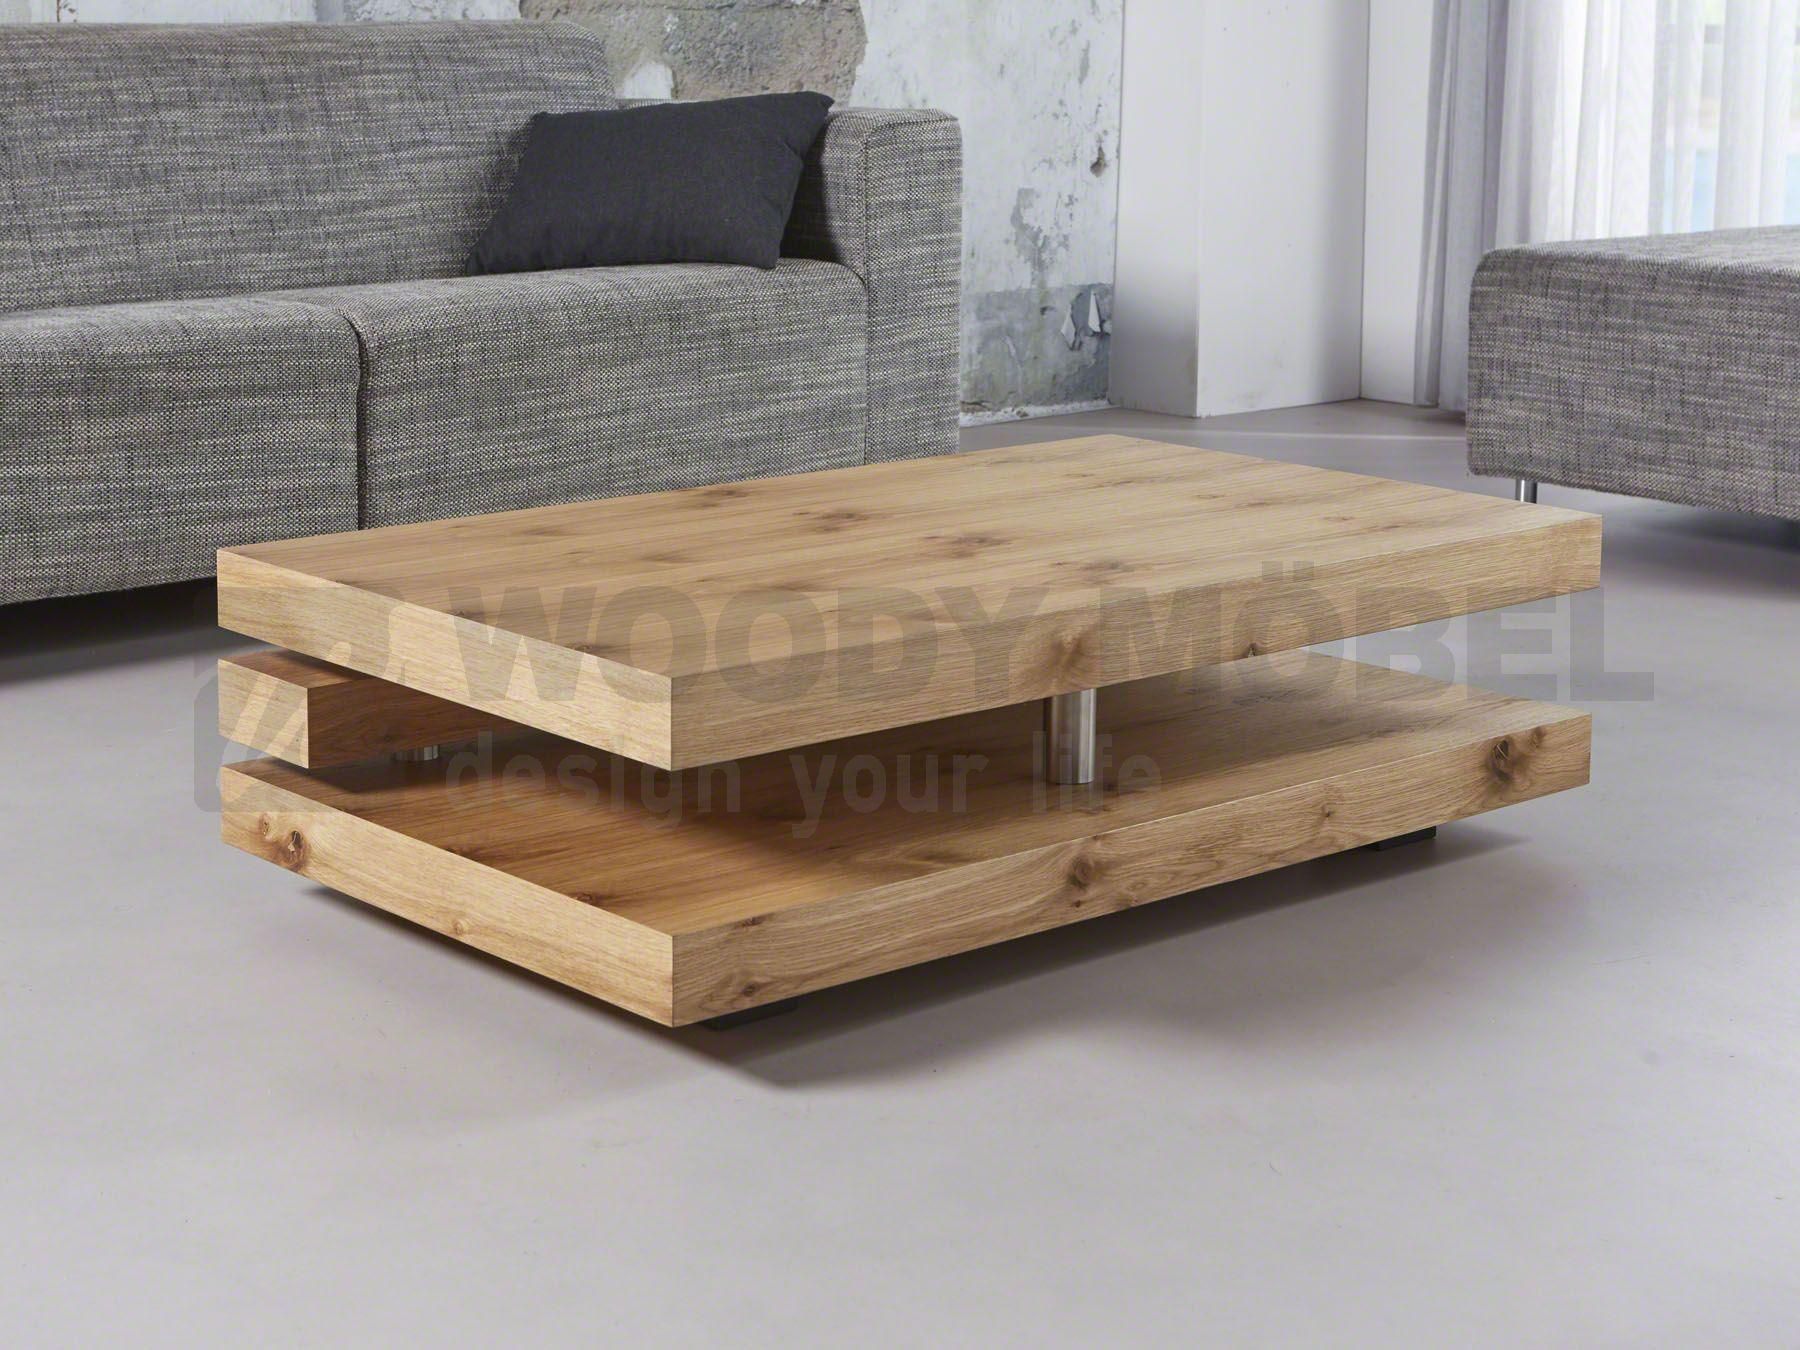 Couchtisch Holz Eiche Couchtisch Holz Eiche Holzdeko Furniture Wood Table Und Table